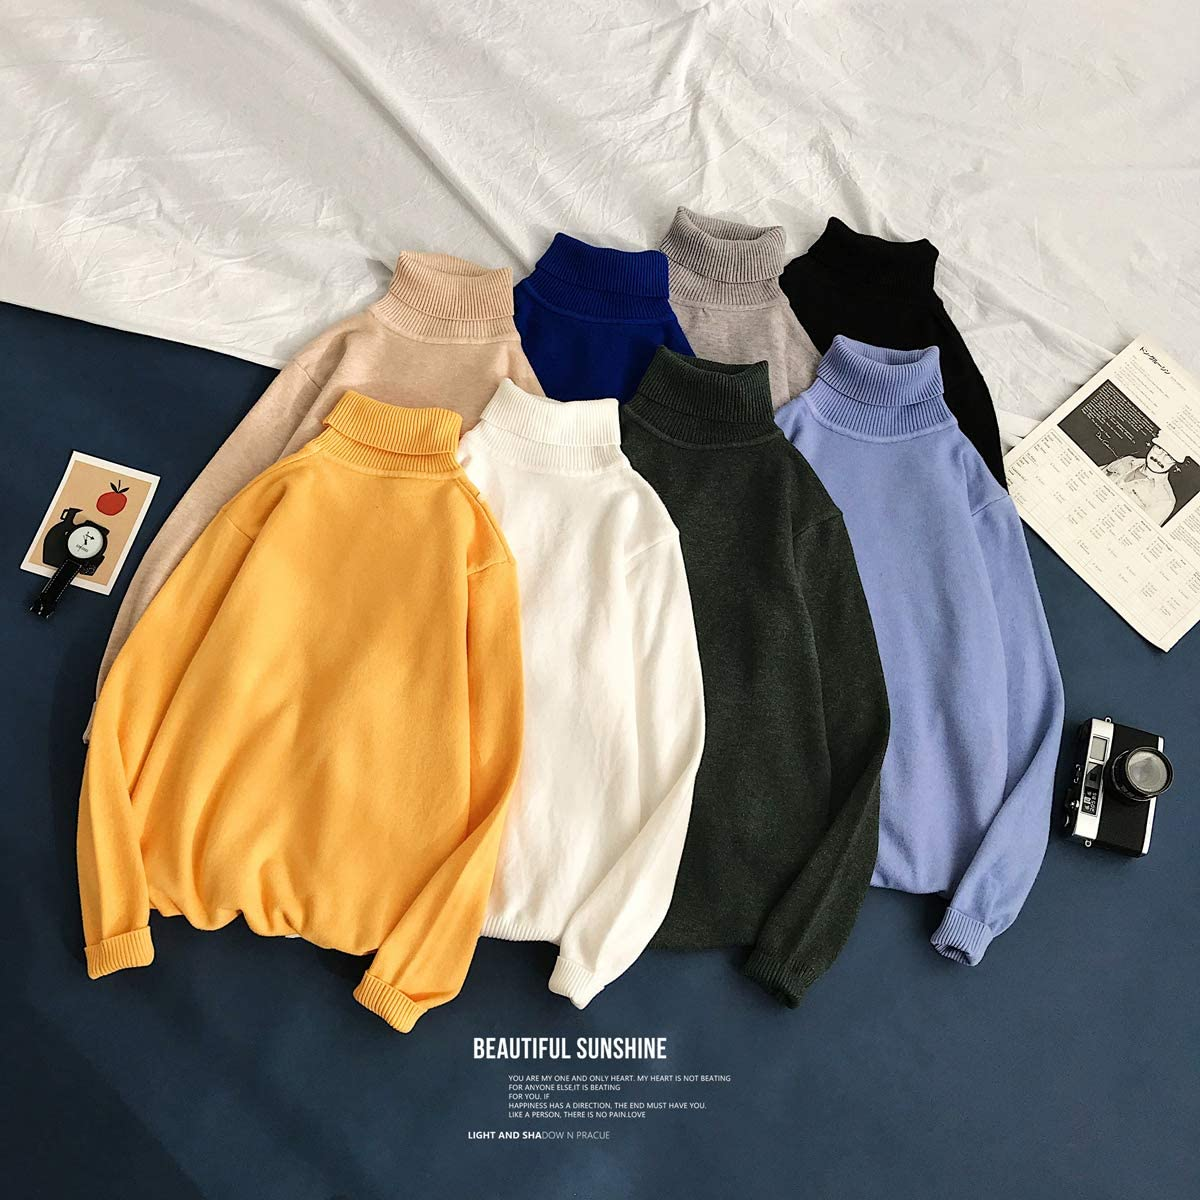 Men 's Slim Fit Turtleneck Sweater Casual Fashion Long Sleeve Stretch Winter Knitted Pullover Tops